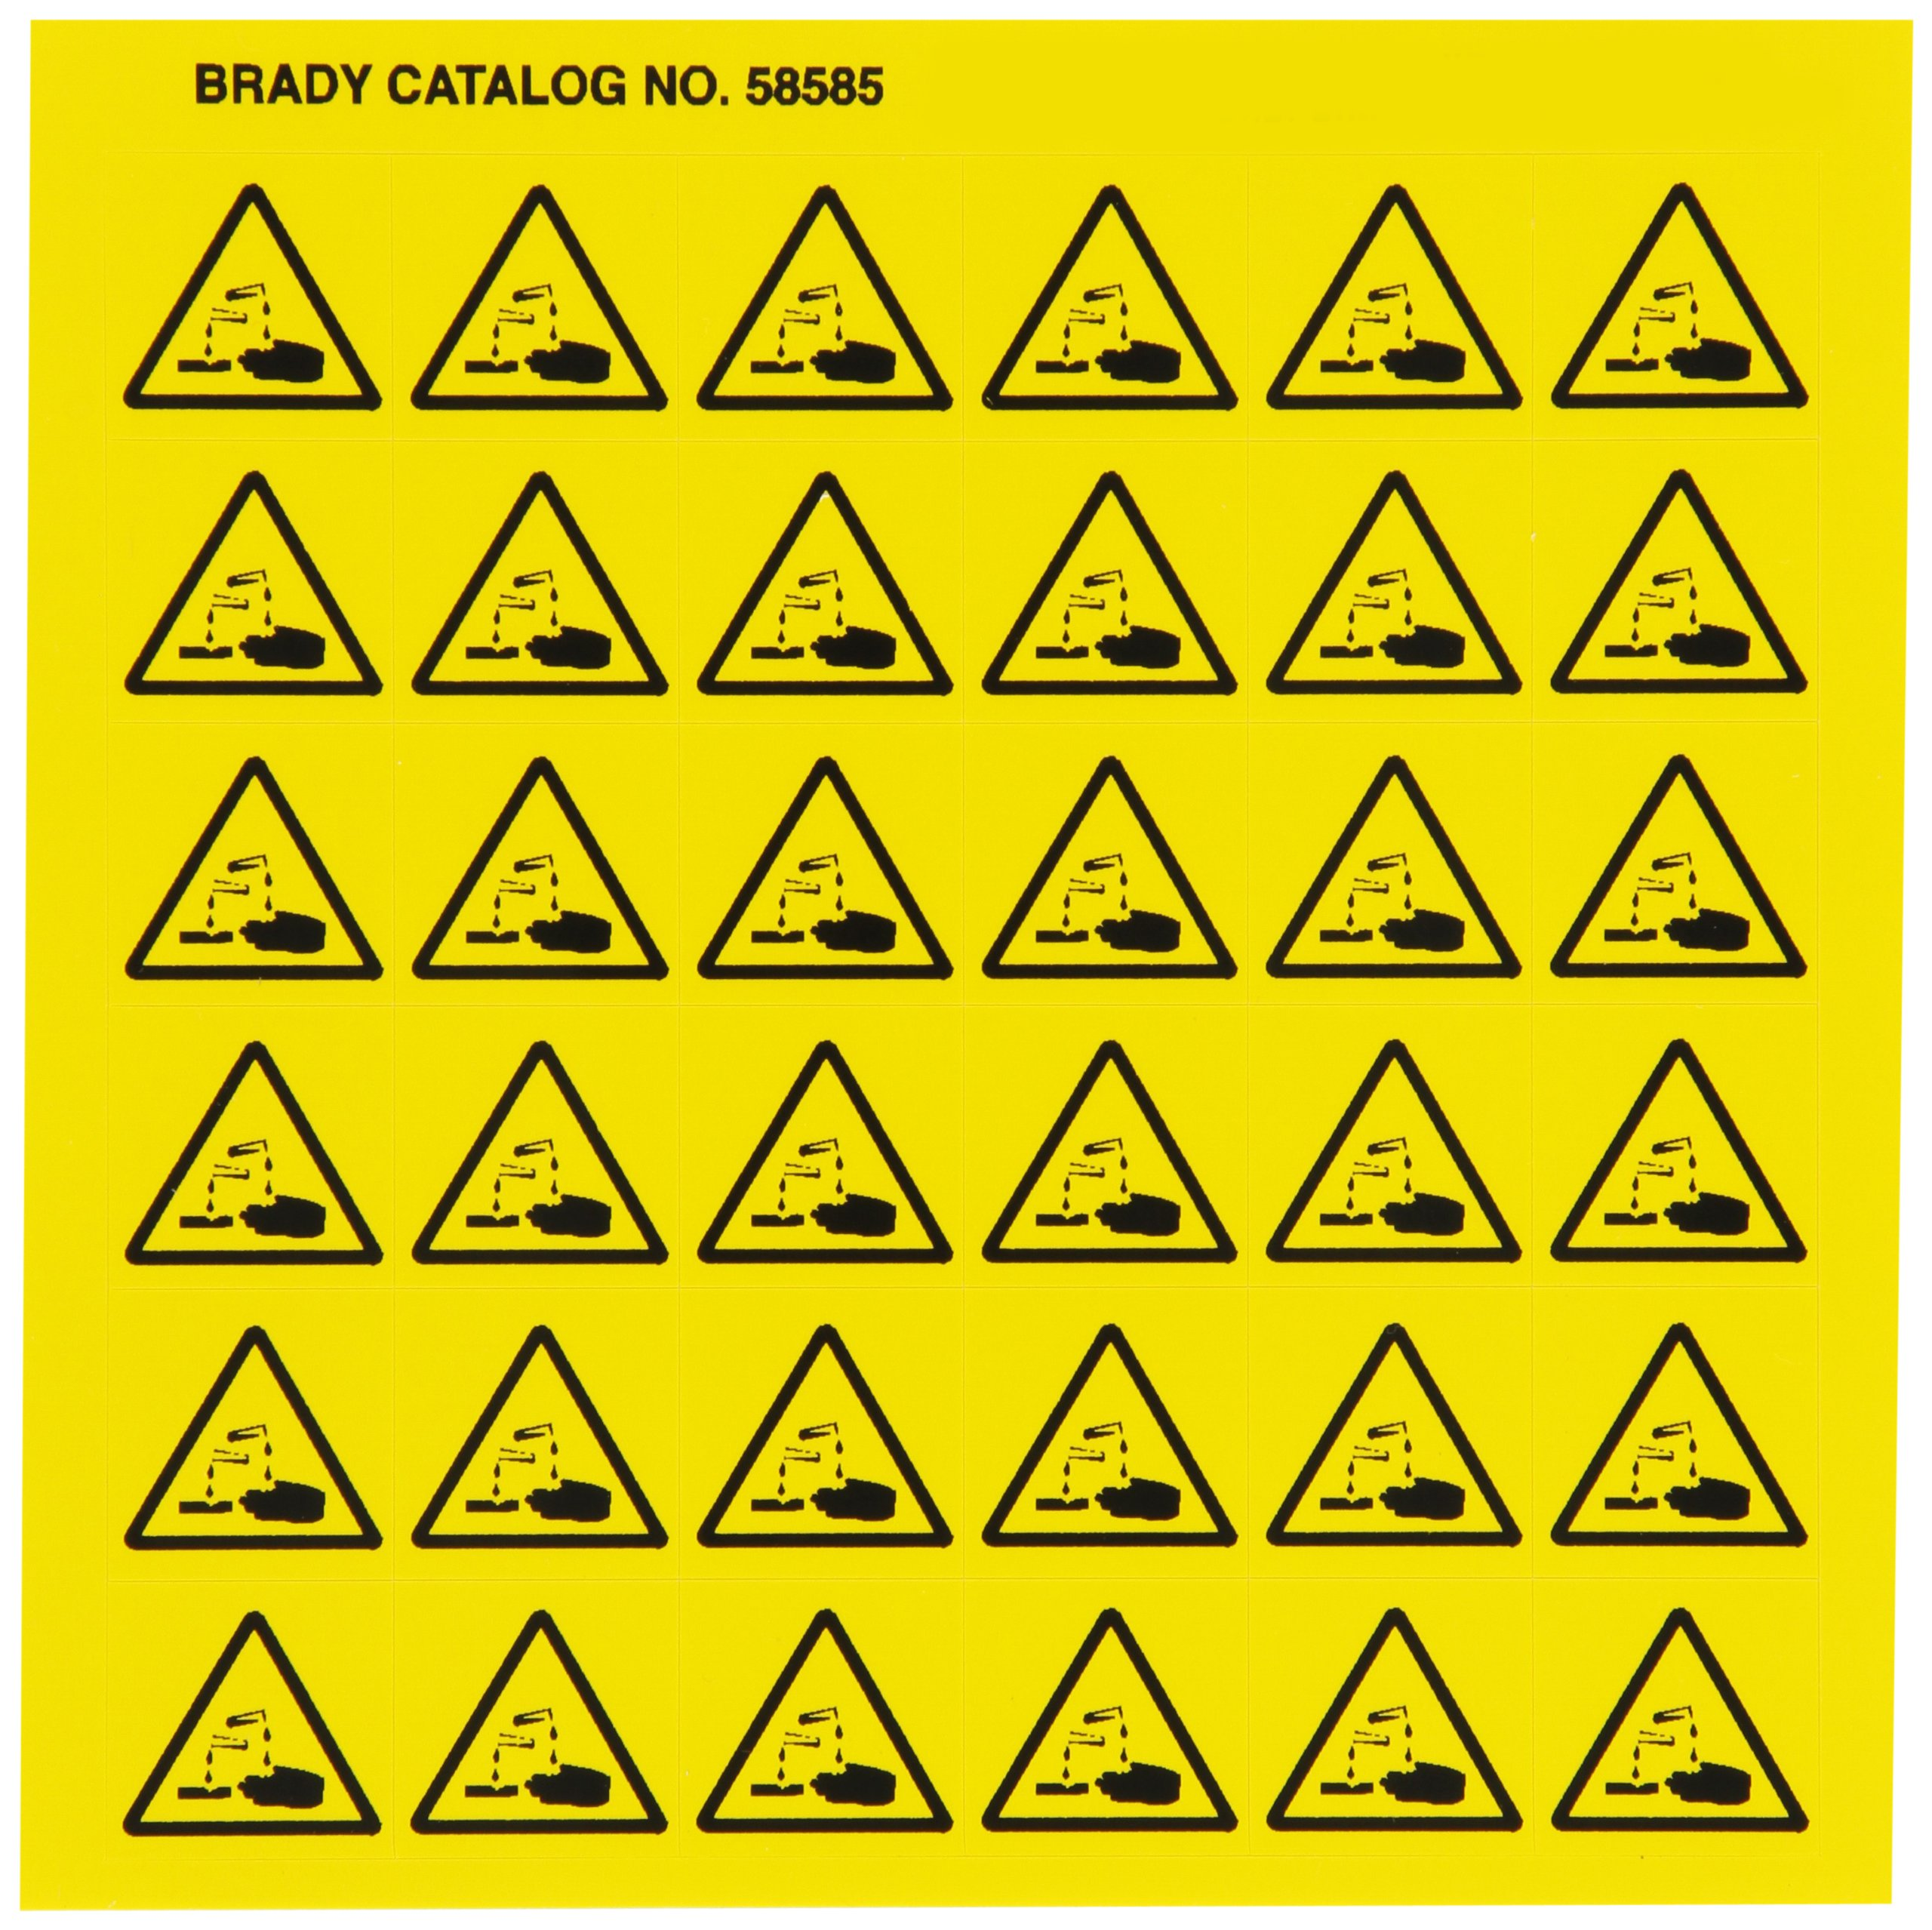 Brady 58585 Pressure Sensitive Vinyl Right-To-Know Pictogram Labels , Black On Yellow,  3/4'' Height x 3/4'' Width,  Pictogram ''Corrosive'' (36 Per Card,  1 Card per Package) by Brady (Image #1)